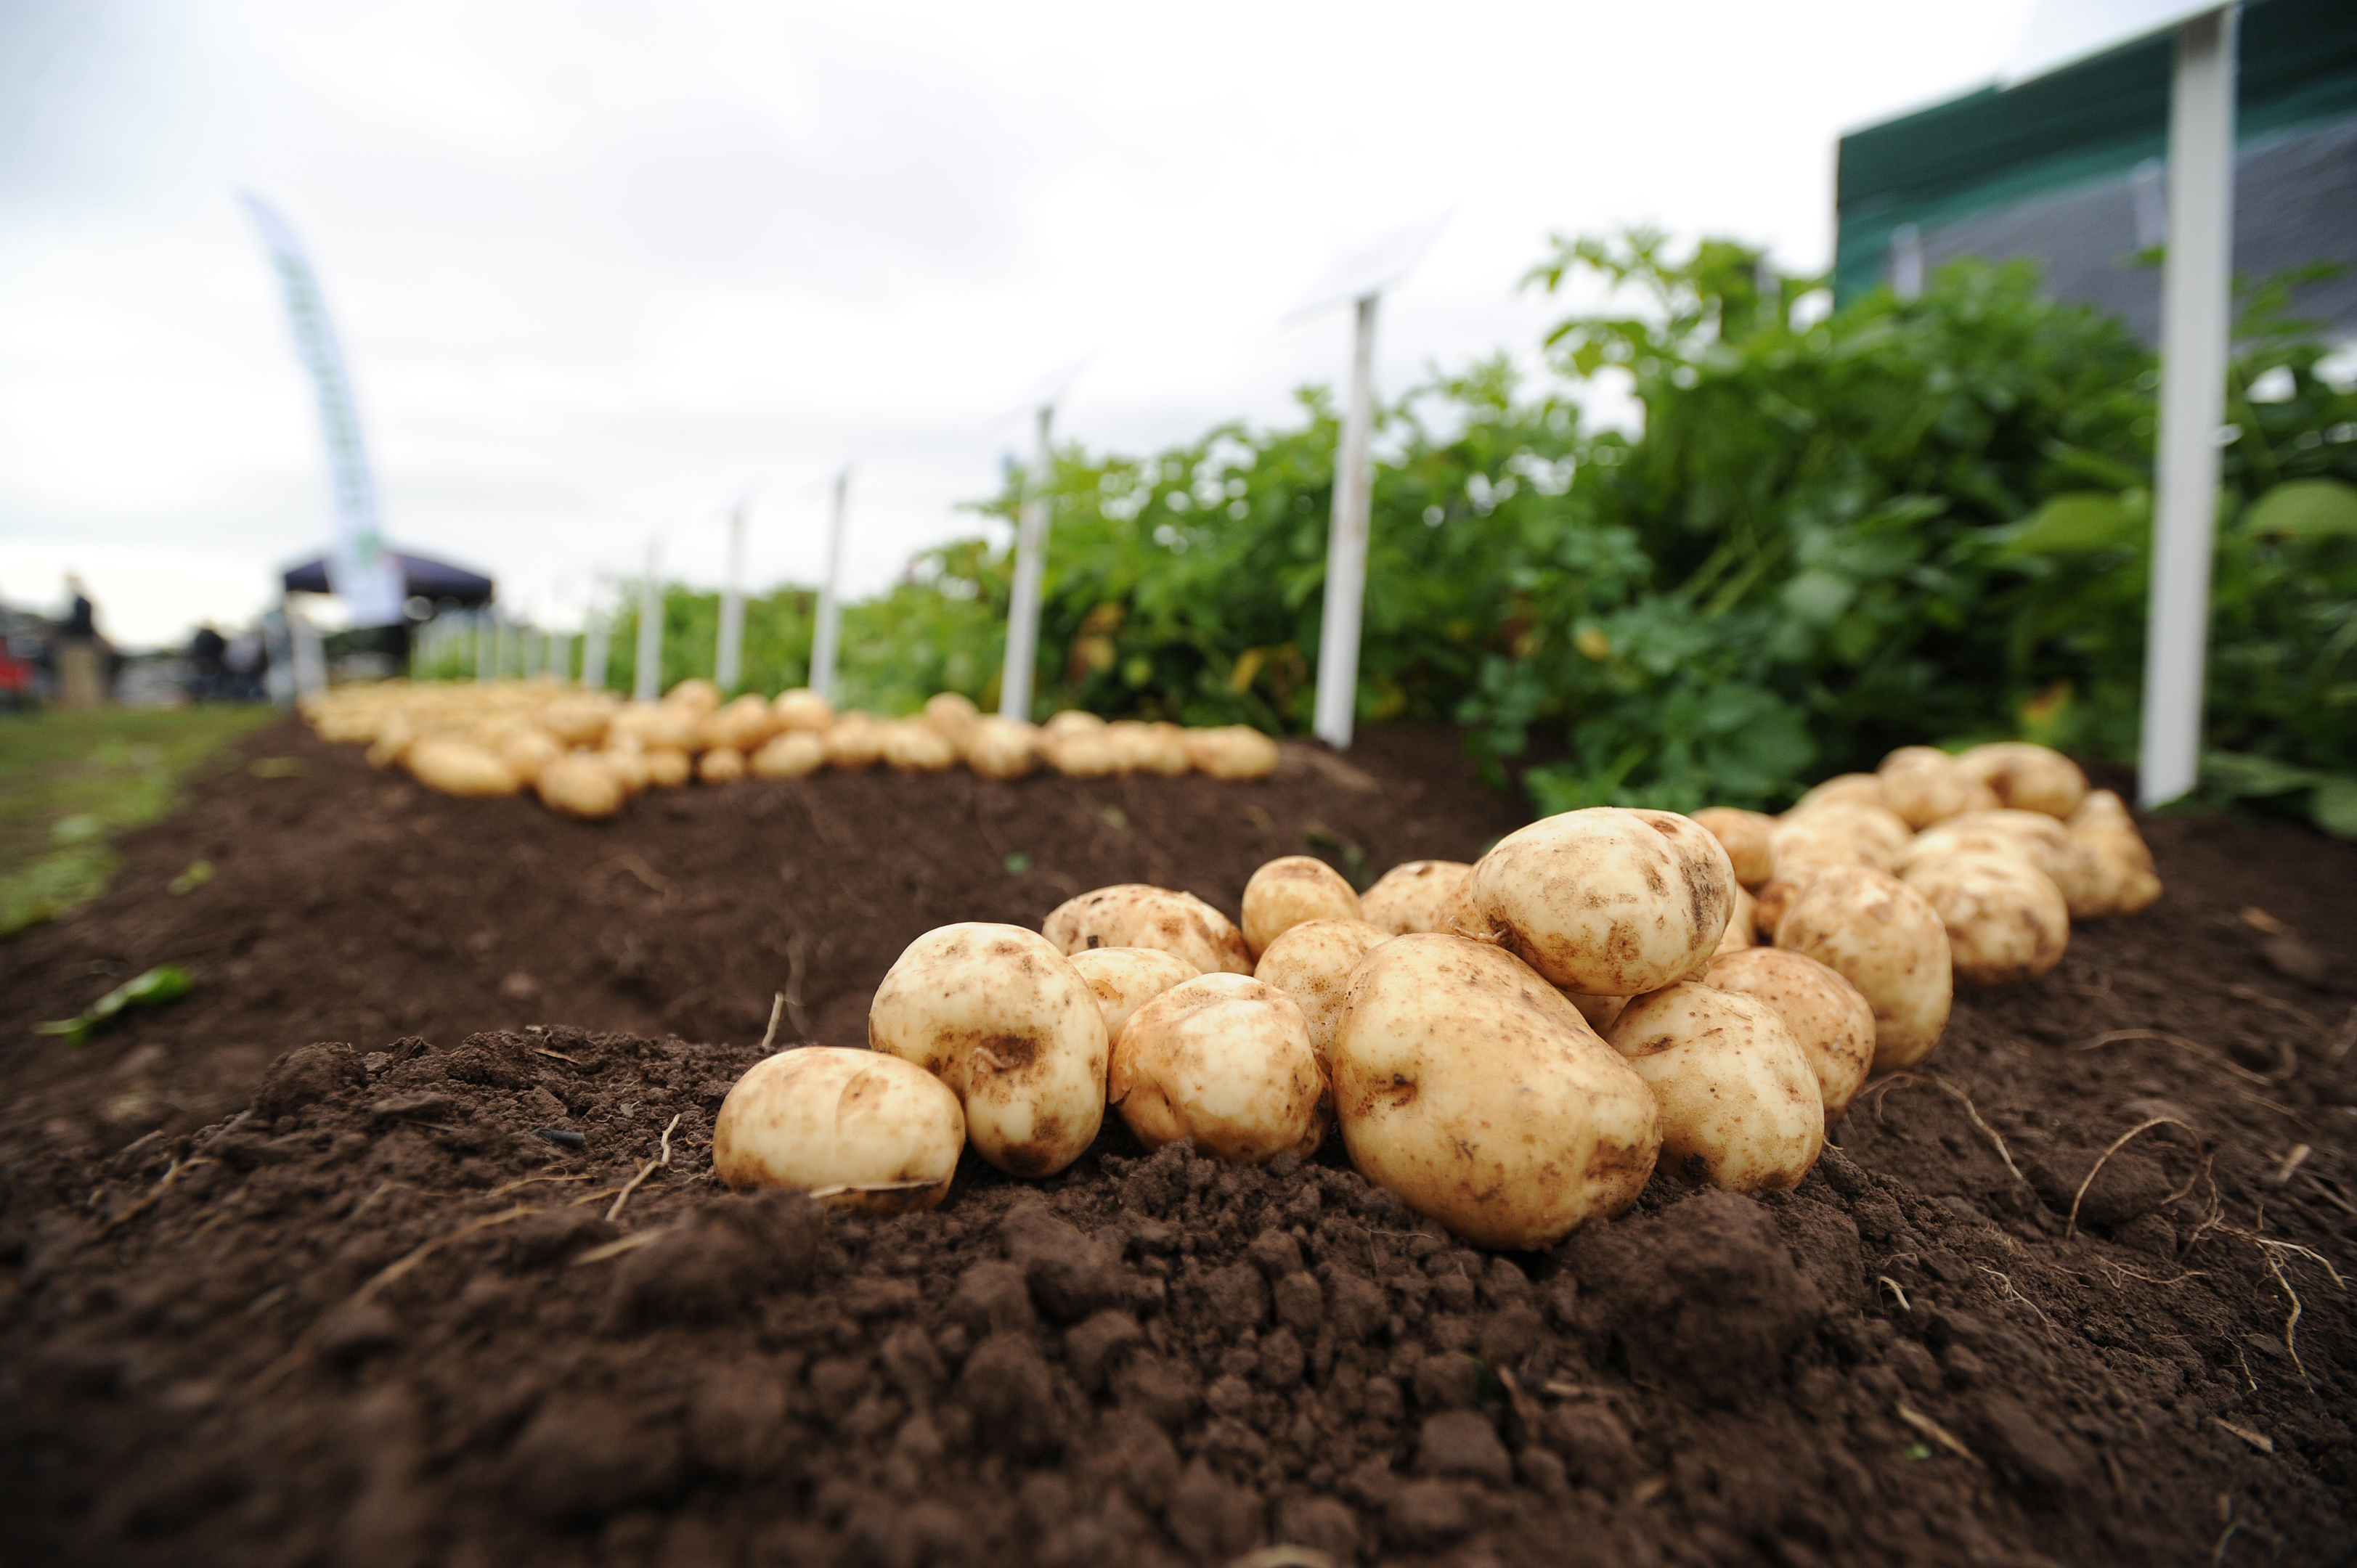 The Farmcare potato business at Carnoustie has been bought by Morrisons.